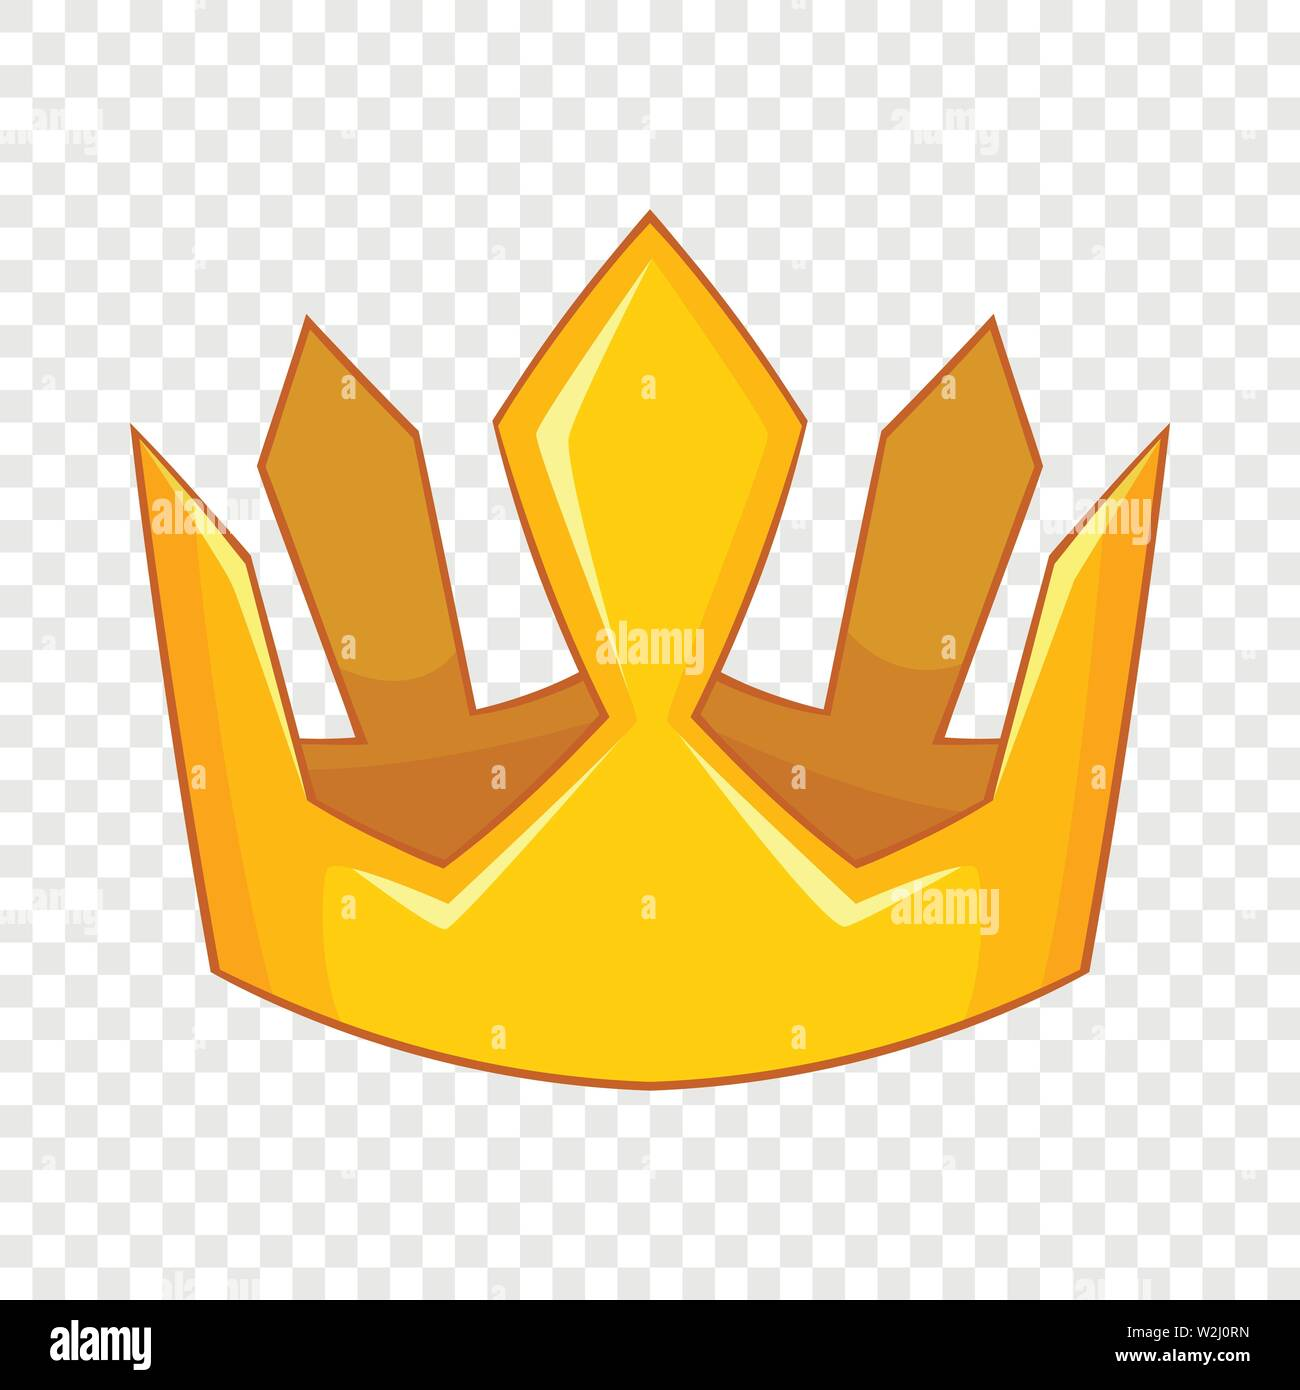 King Crown Icon Cartoon Style Stock Vector Image Art Alamy Make an awesome king logo online with brandcrowd's king logo maker. alamy